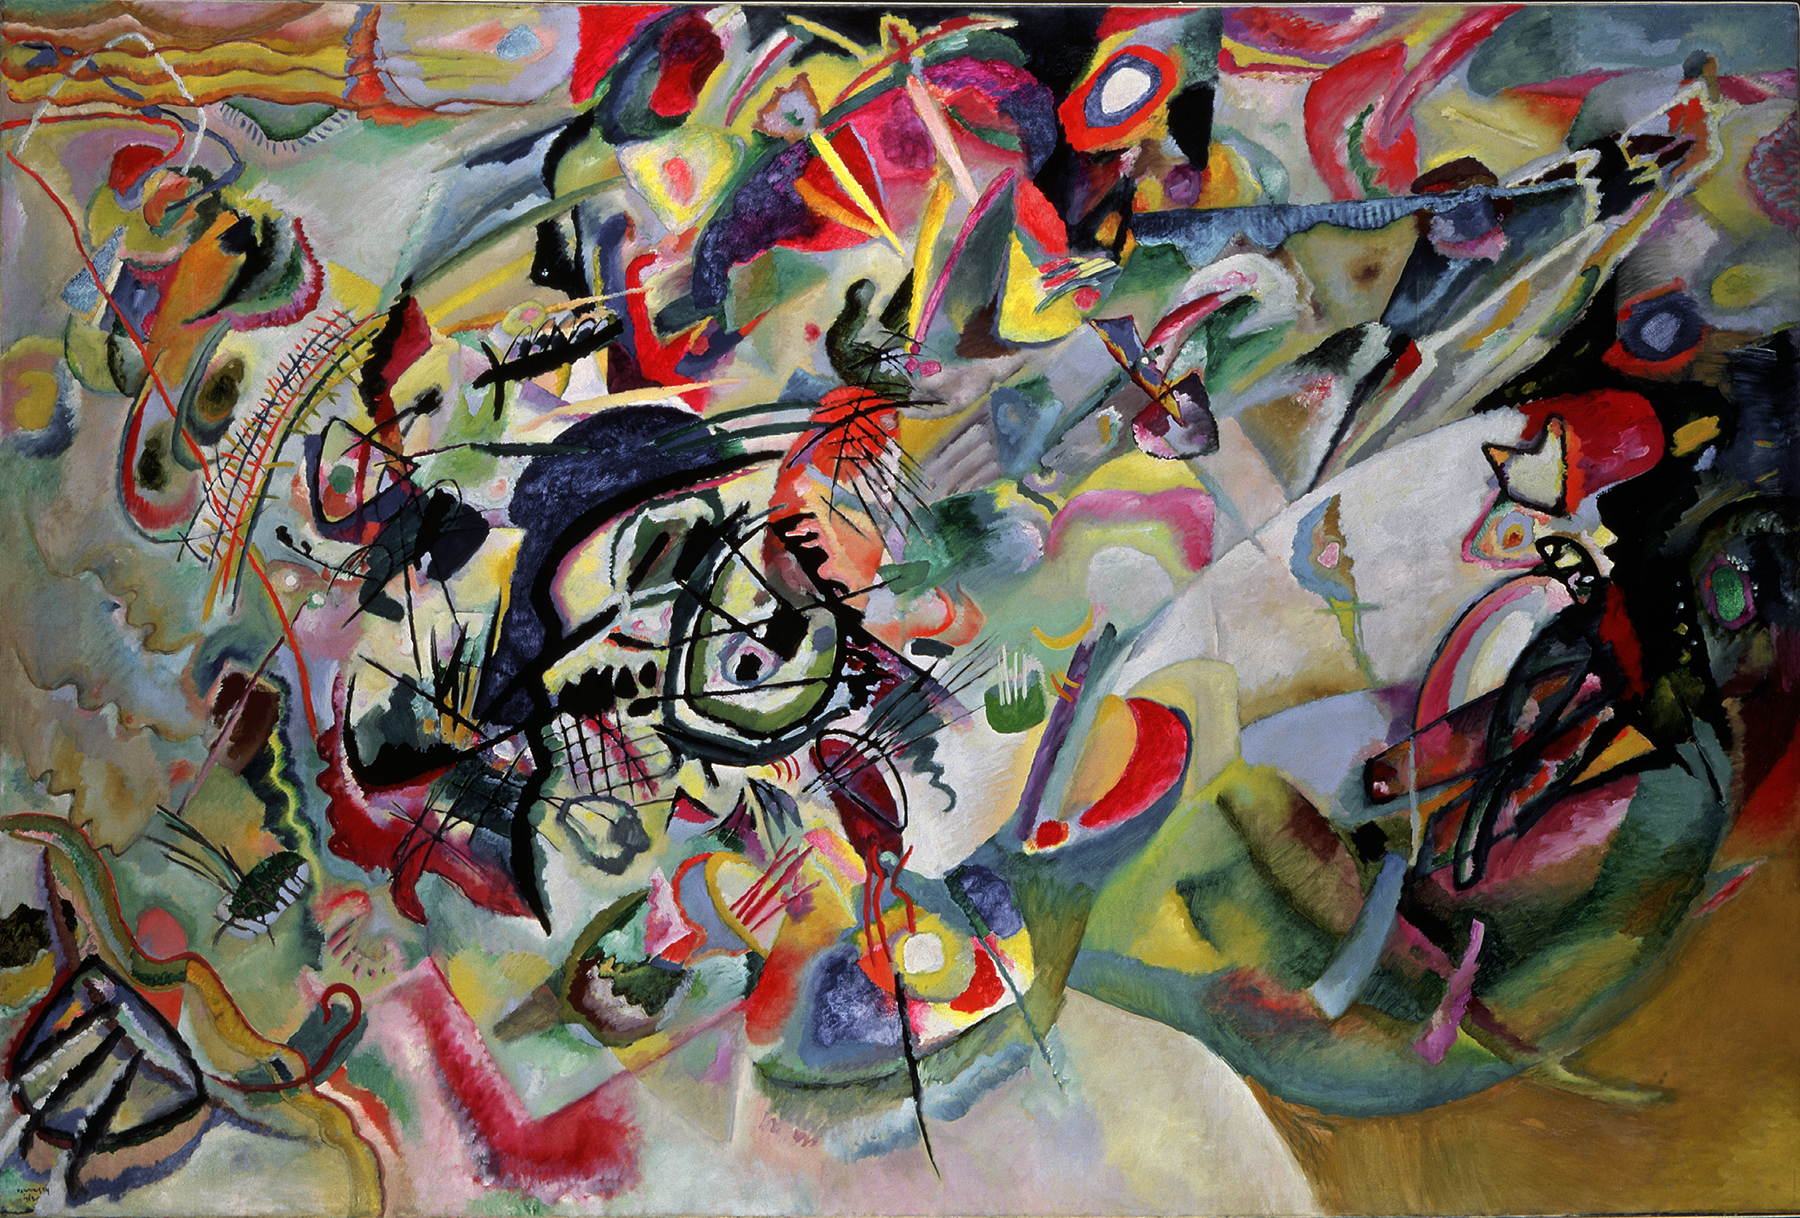 Wasiliy Kandinskiy. Composition VII. 1913. Oil on canvas.